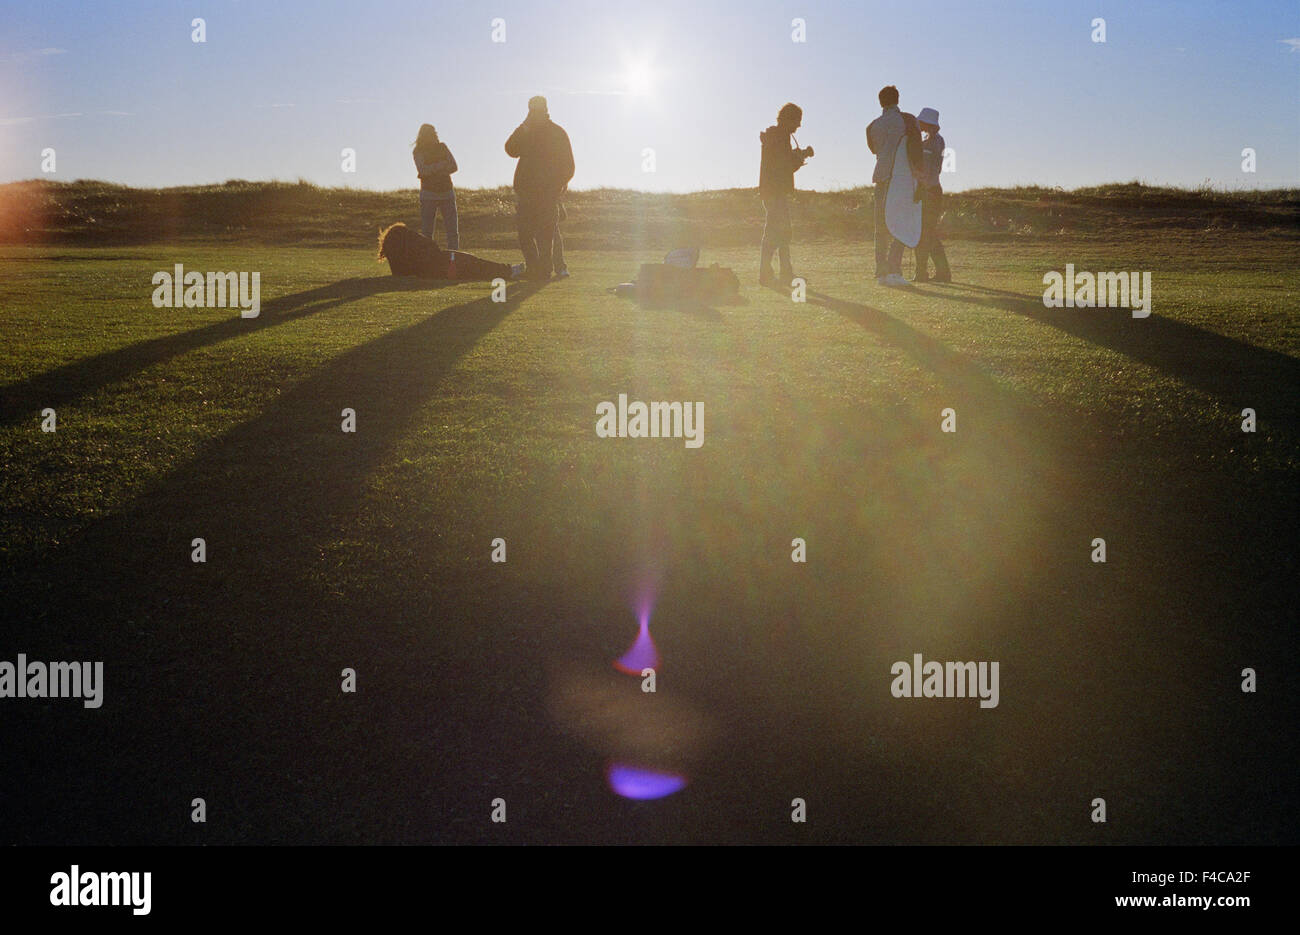 Teenagers Golf Course Stock Photos & Teenagers Golf Course Stock ...